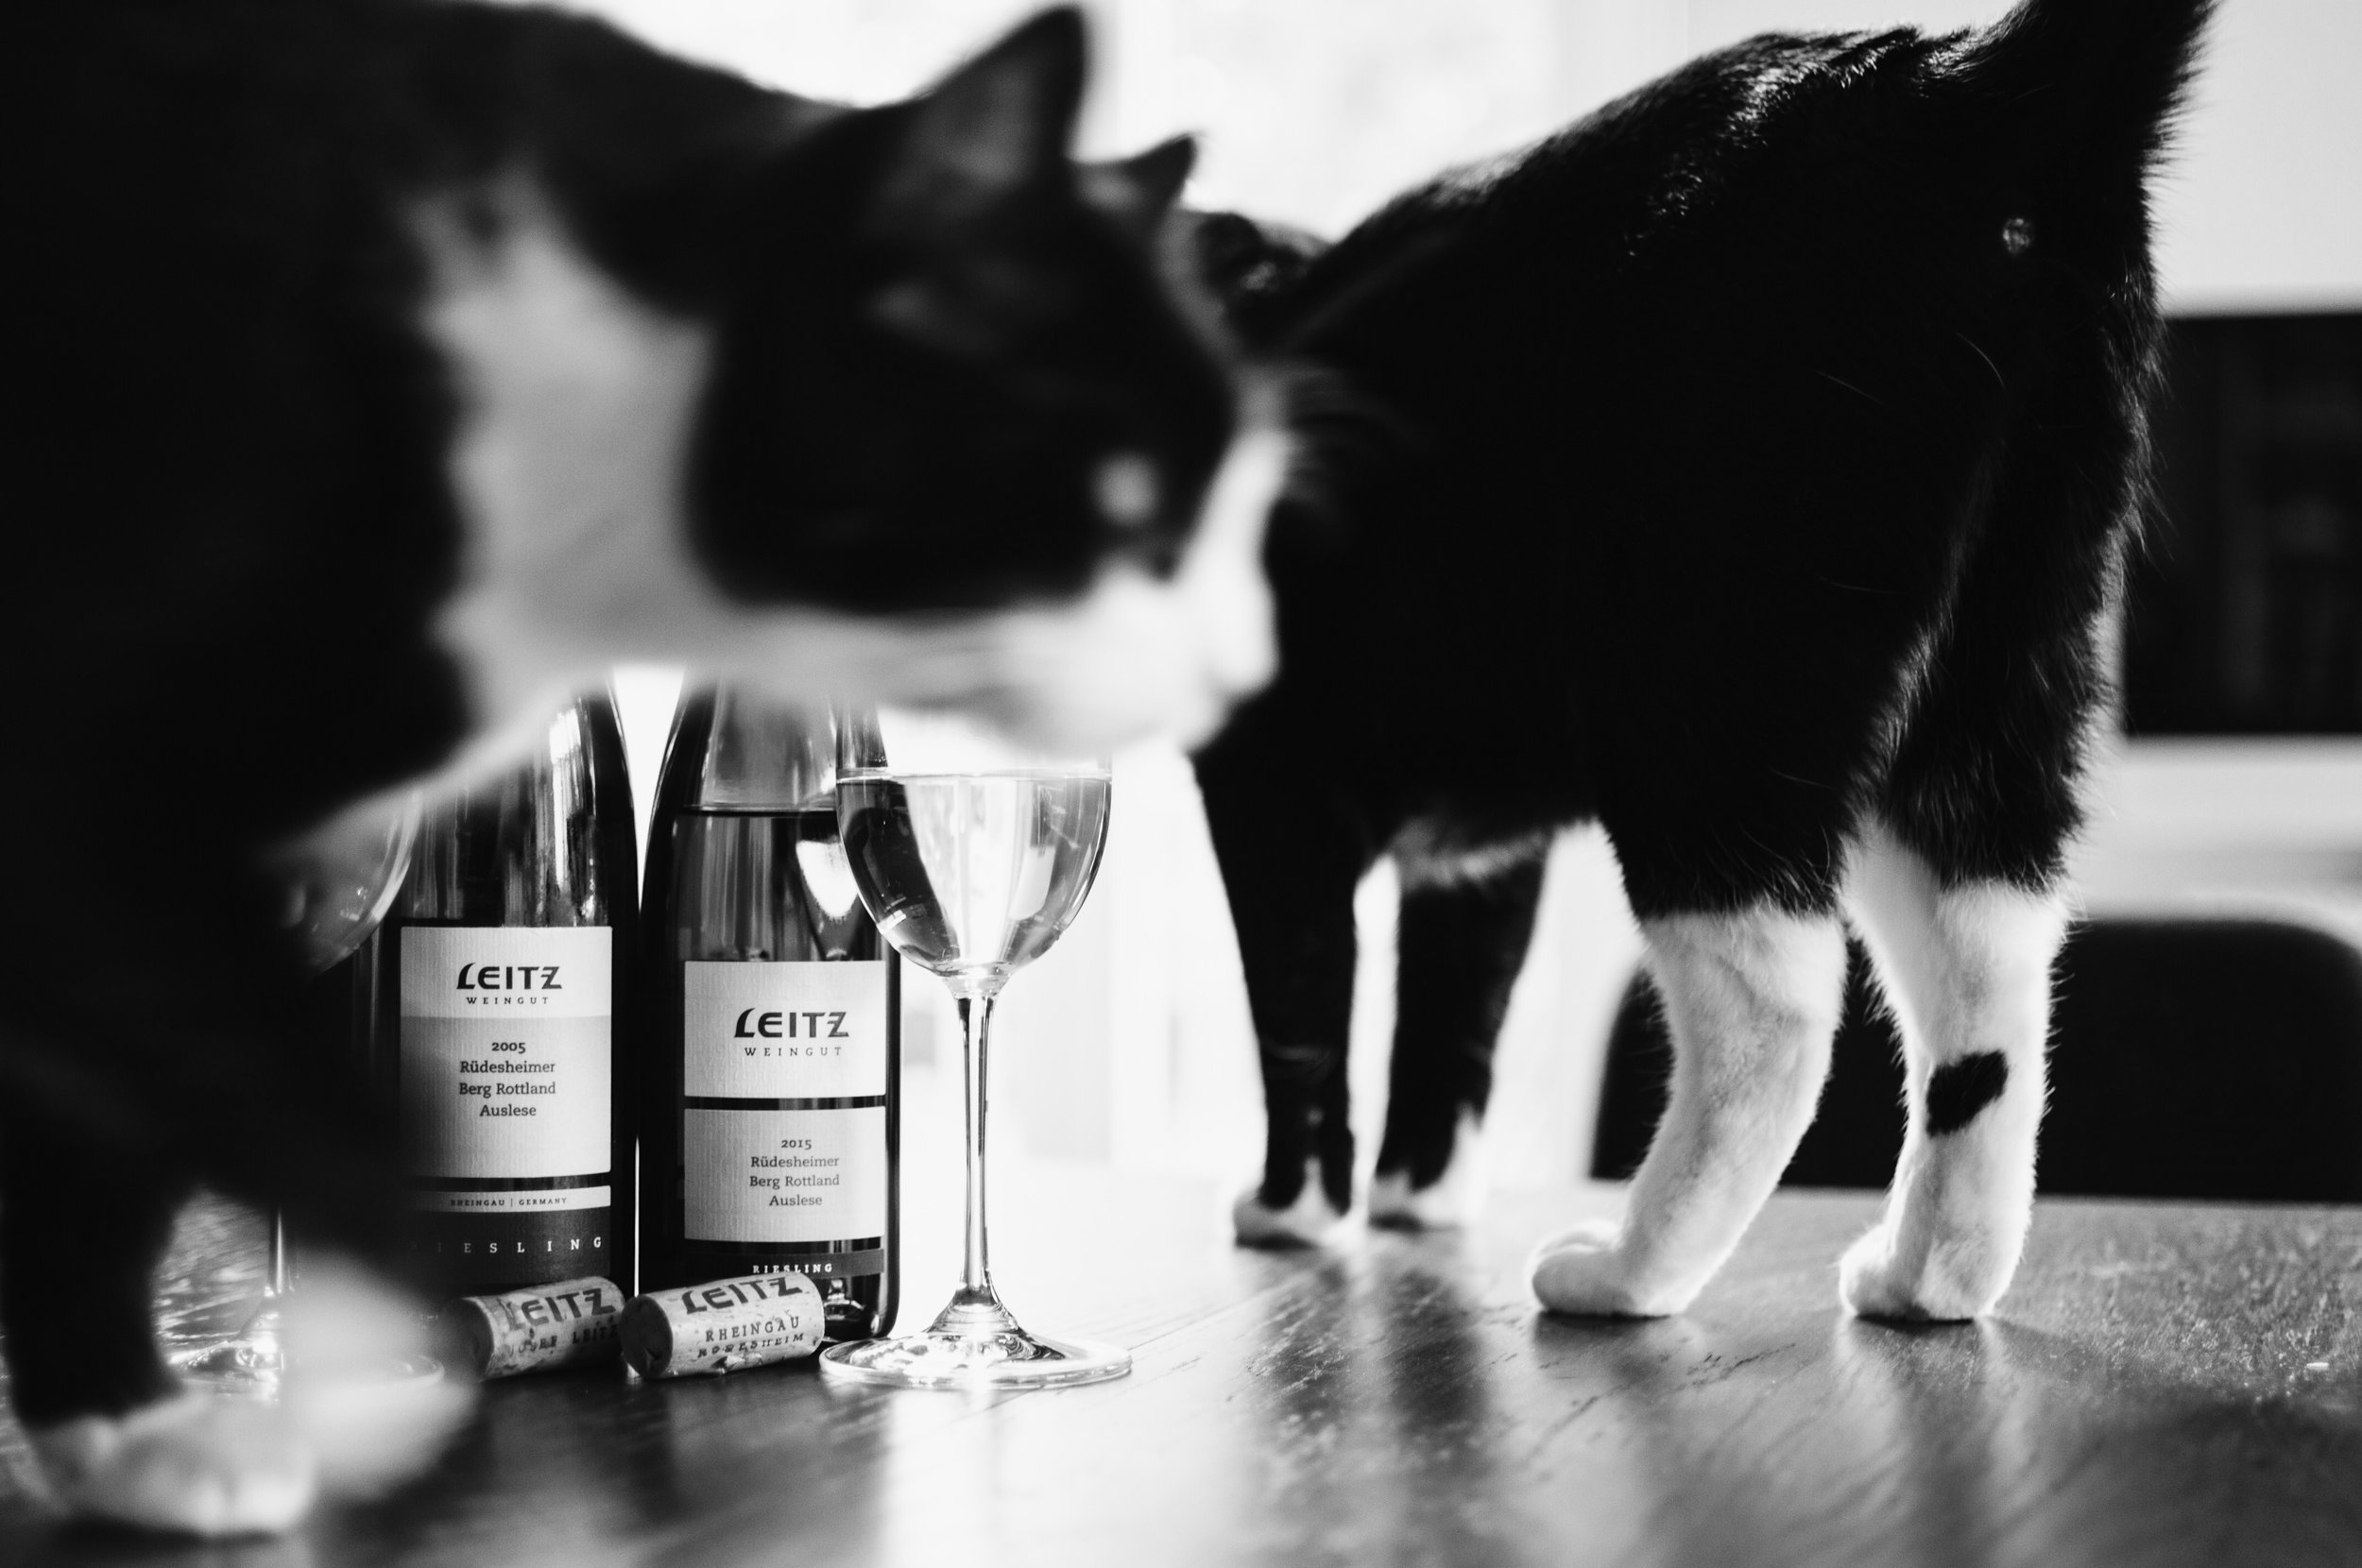 Too curious to not disturb a photo session... Itchy and Scratchy are part of every indoor shooting for Heroes of Riesling.